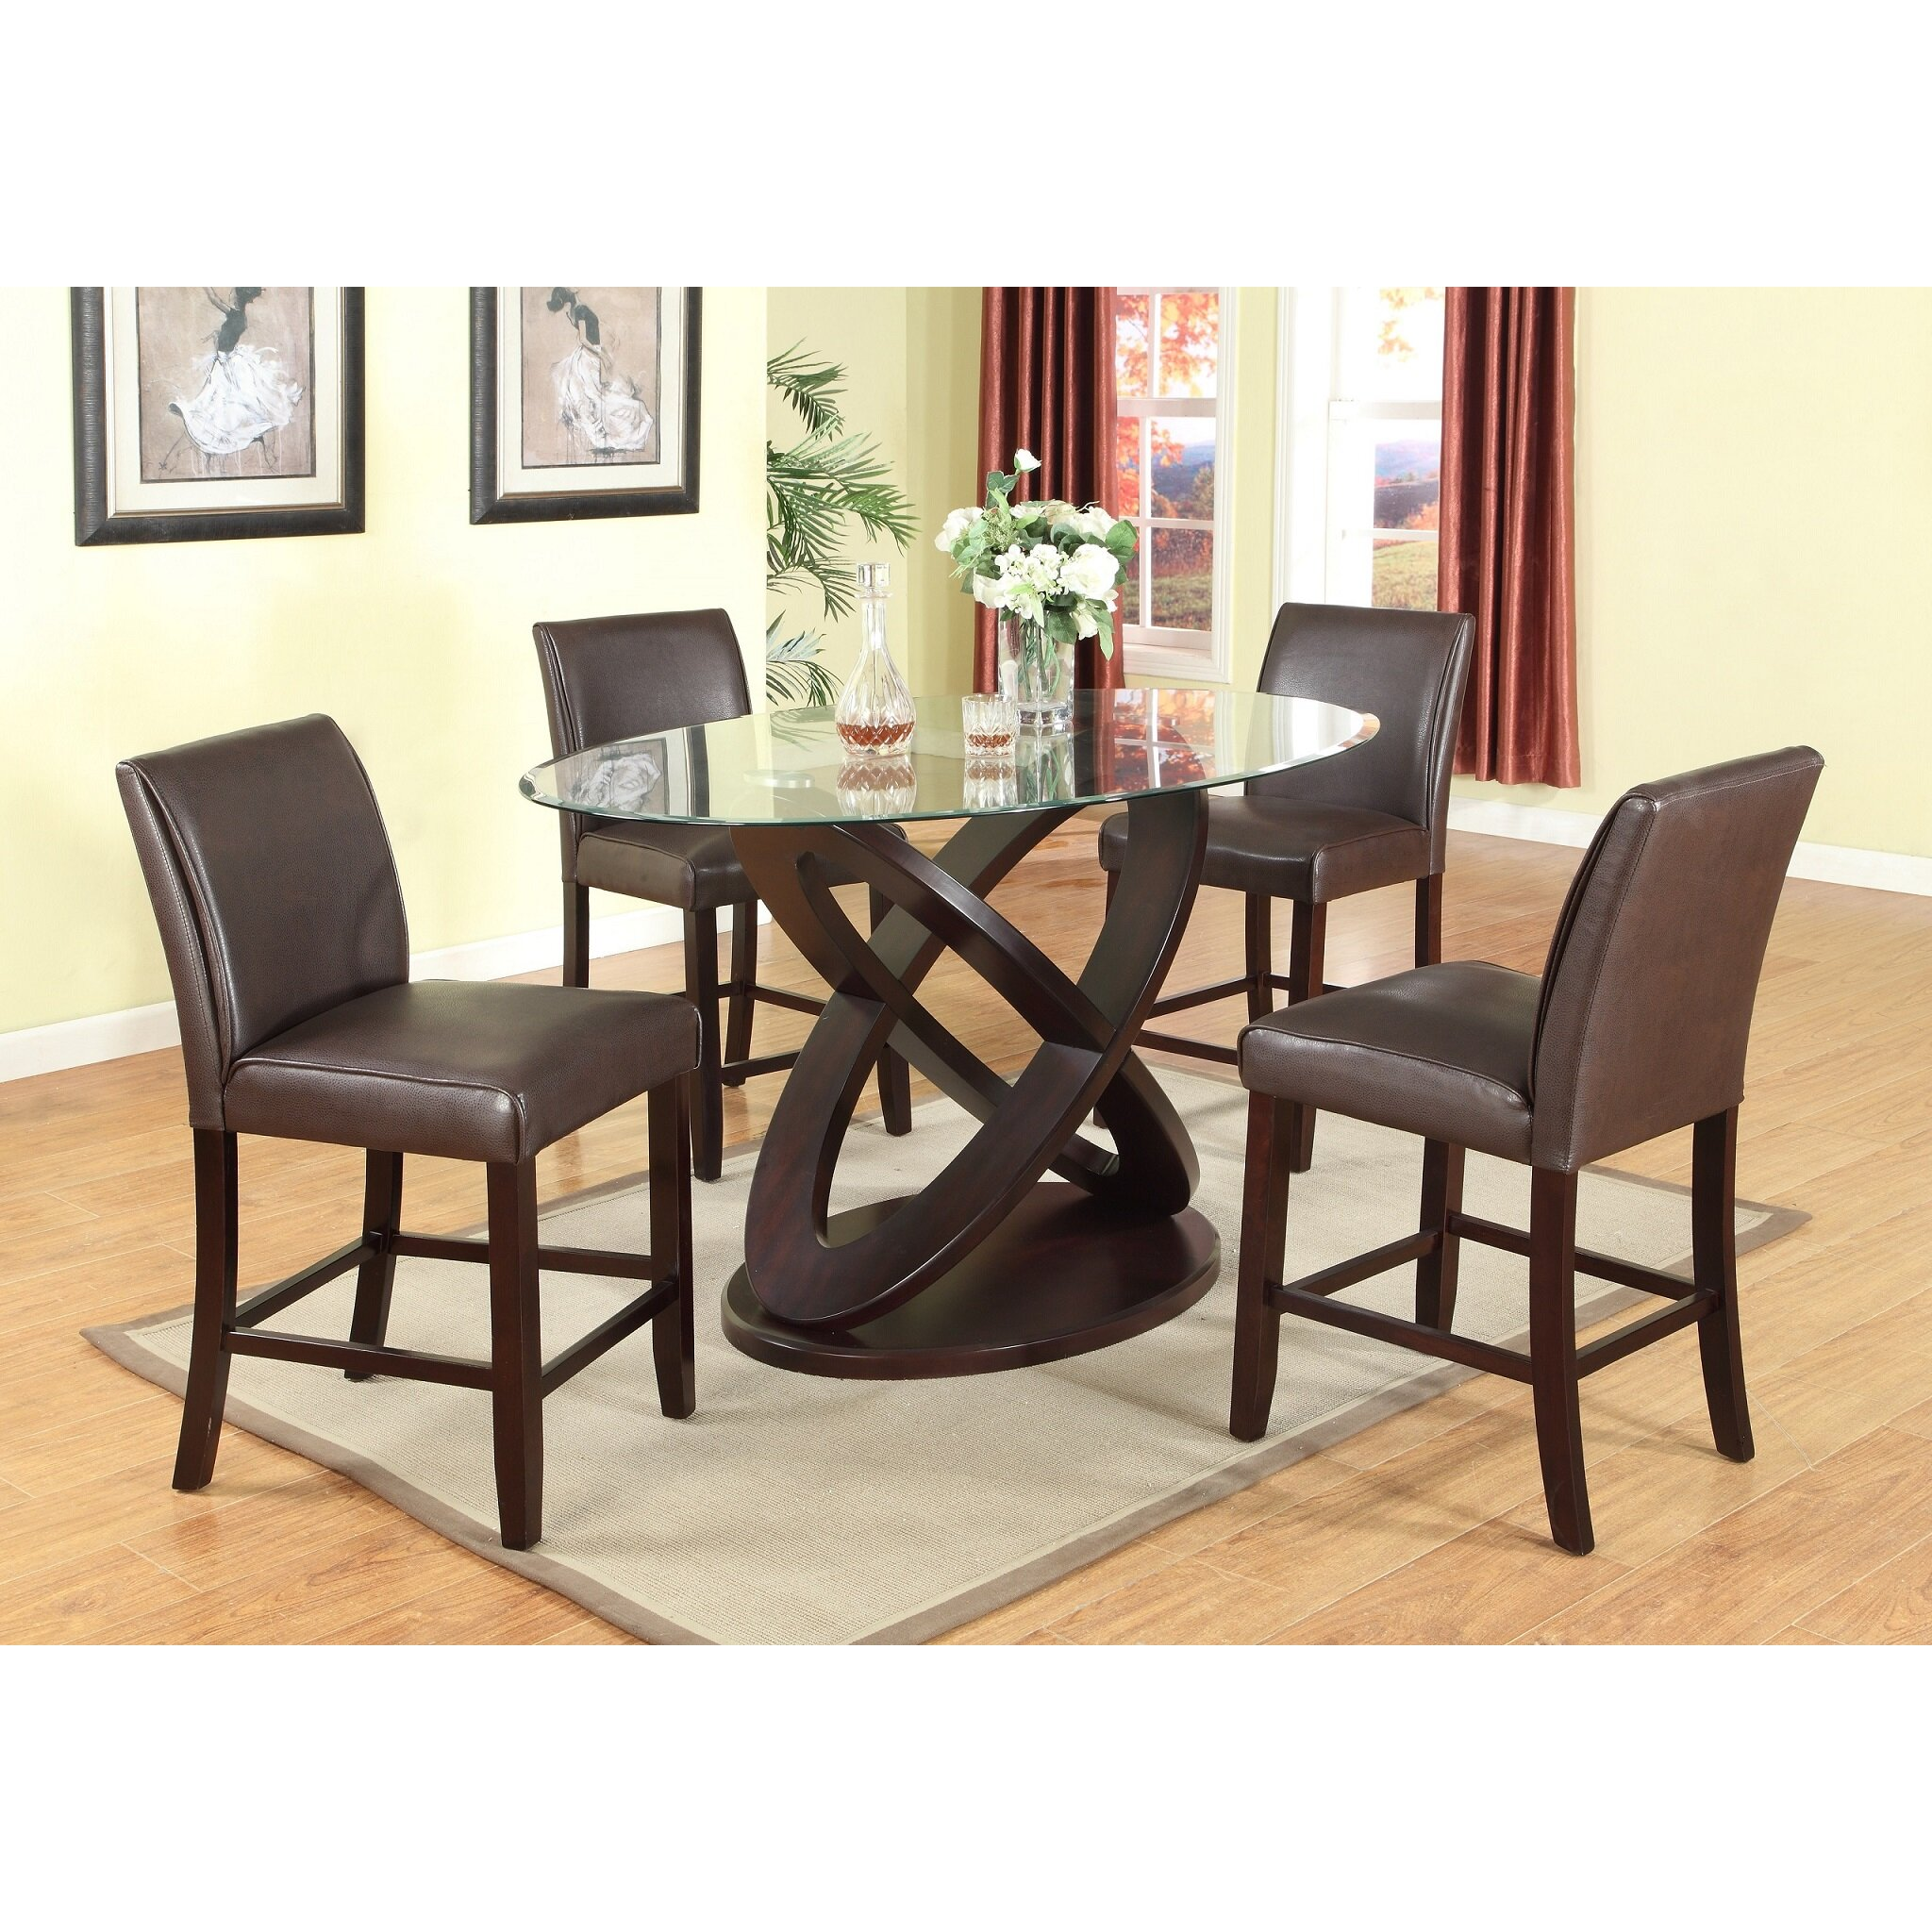 Ashland Black Counter Height 5 Piece Dining Set: Roundhill Furniture Cicicol 5 Piece Counter Height Dining